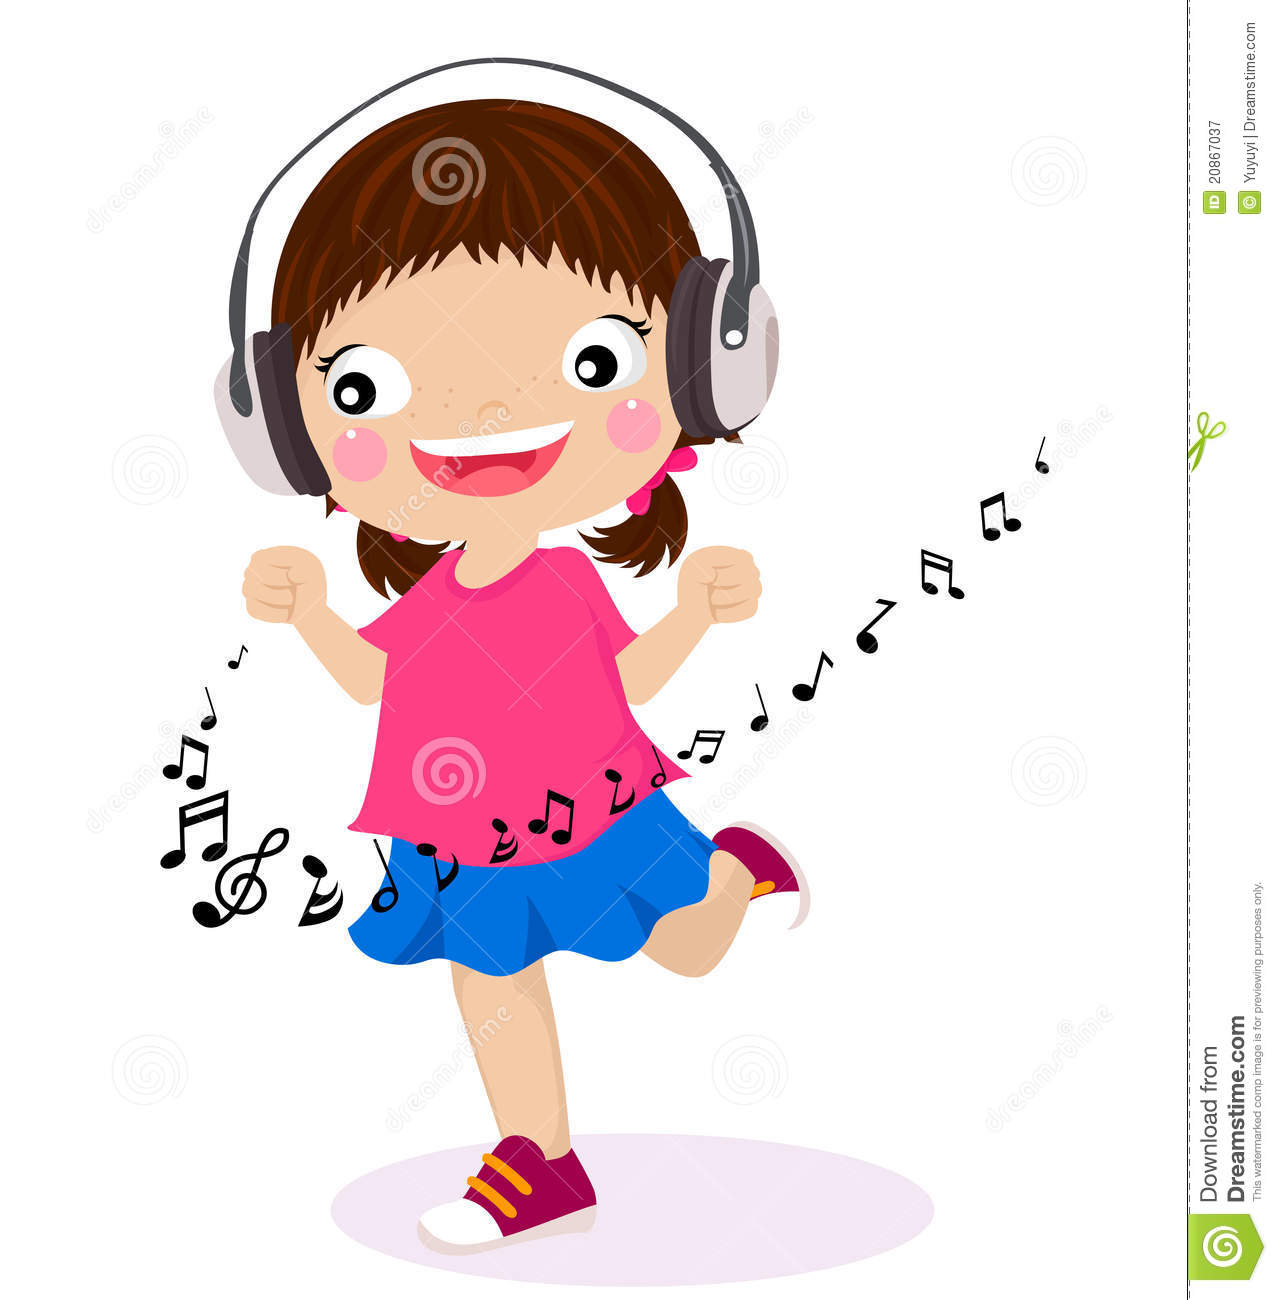 kids-listening-to-music-clipart-dancing-girl-listen-music-headphones-20867037.jpg